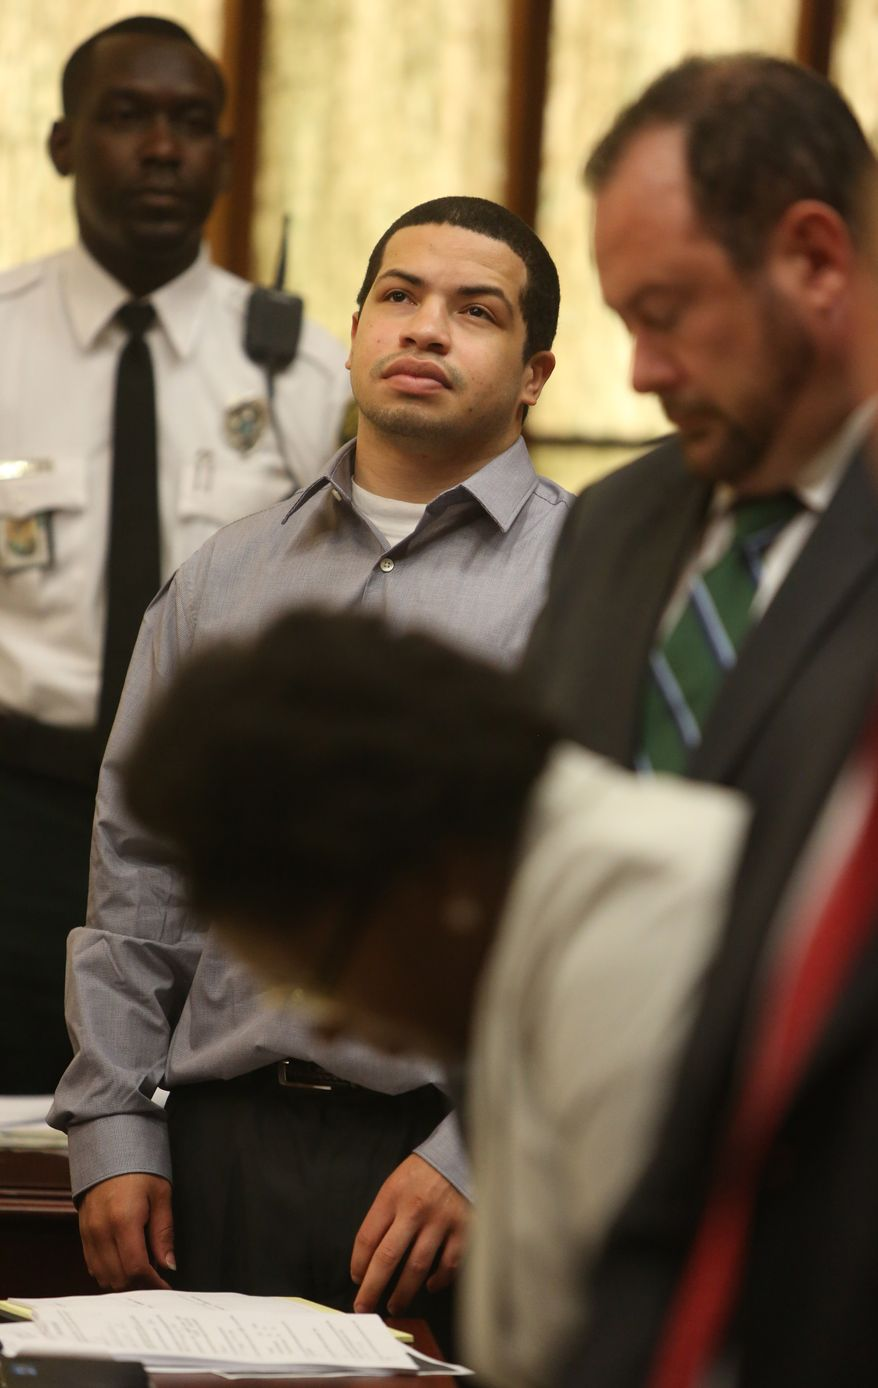 Eric Rivera Jr., center,  stands in court Tuesday, Oct. 15, 2013, in Miami. Rivera is accused  in the 2007 slaying of Washington Redskins star safety Sean Taylor during what police say was a botched burglary attempt. ((AP Photo/The Miami Herald, Walter Michot,pool)